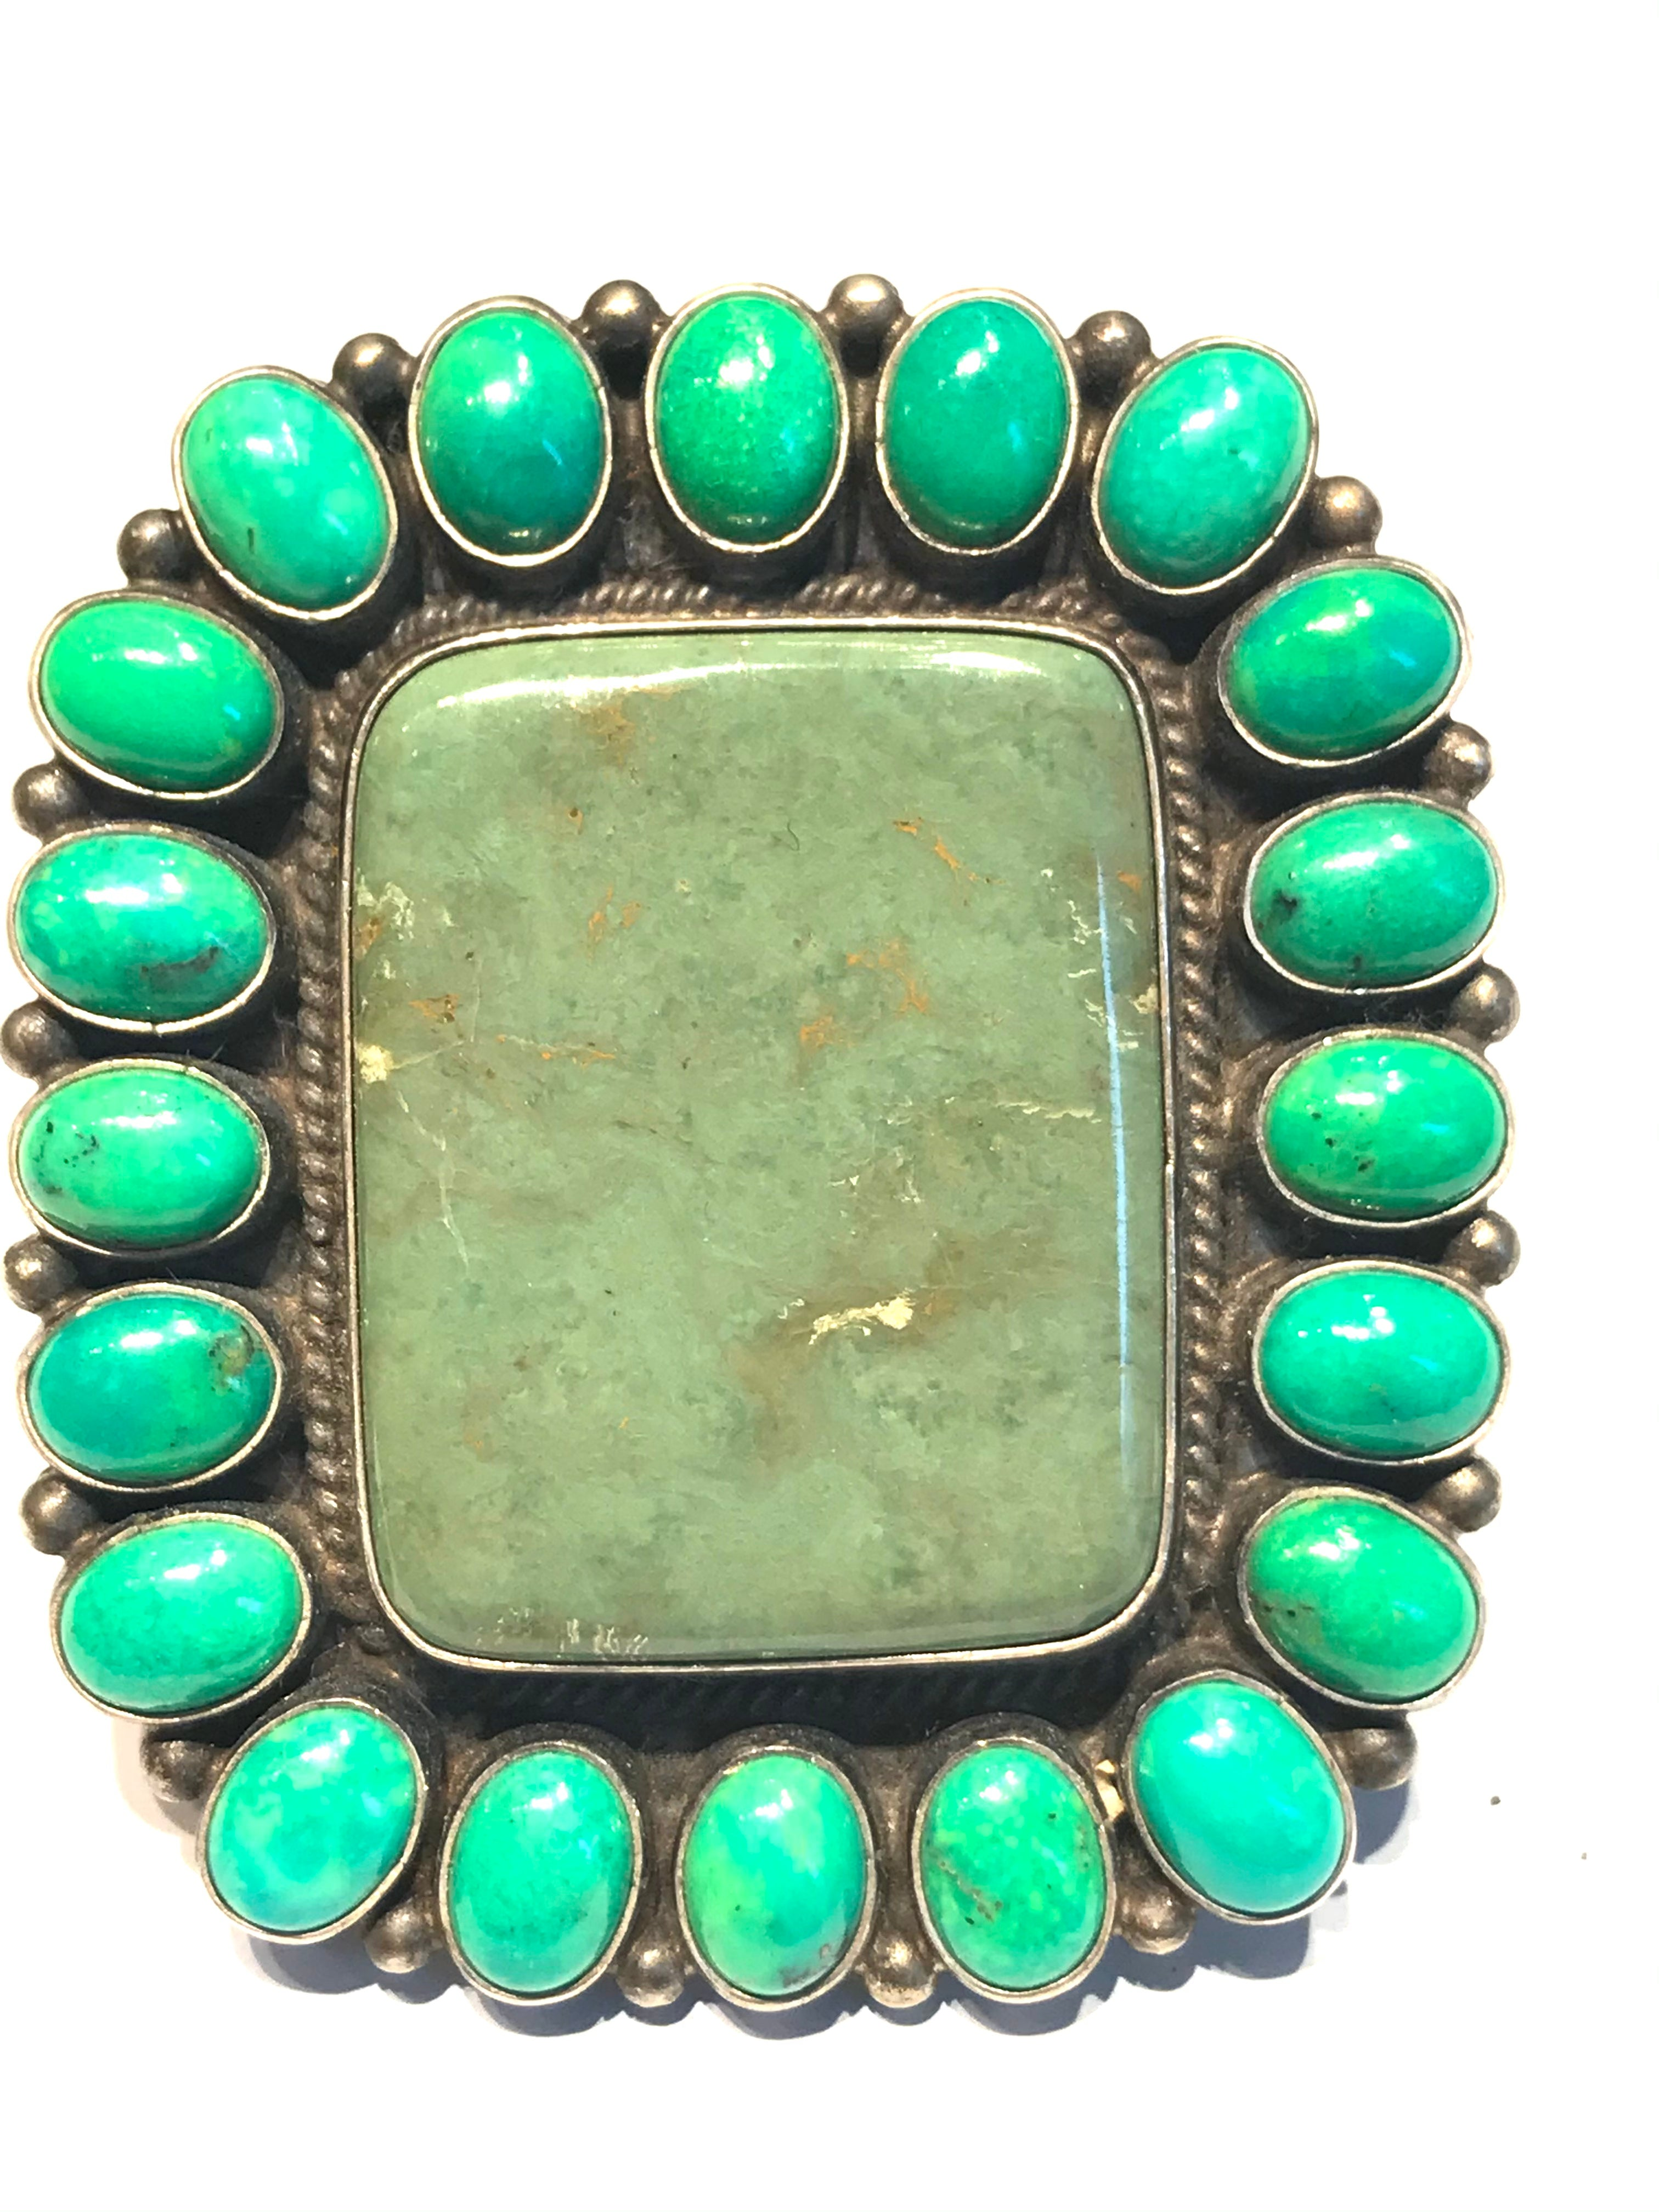 Mojave dessert turquoise large ring